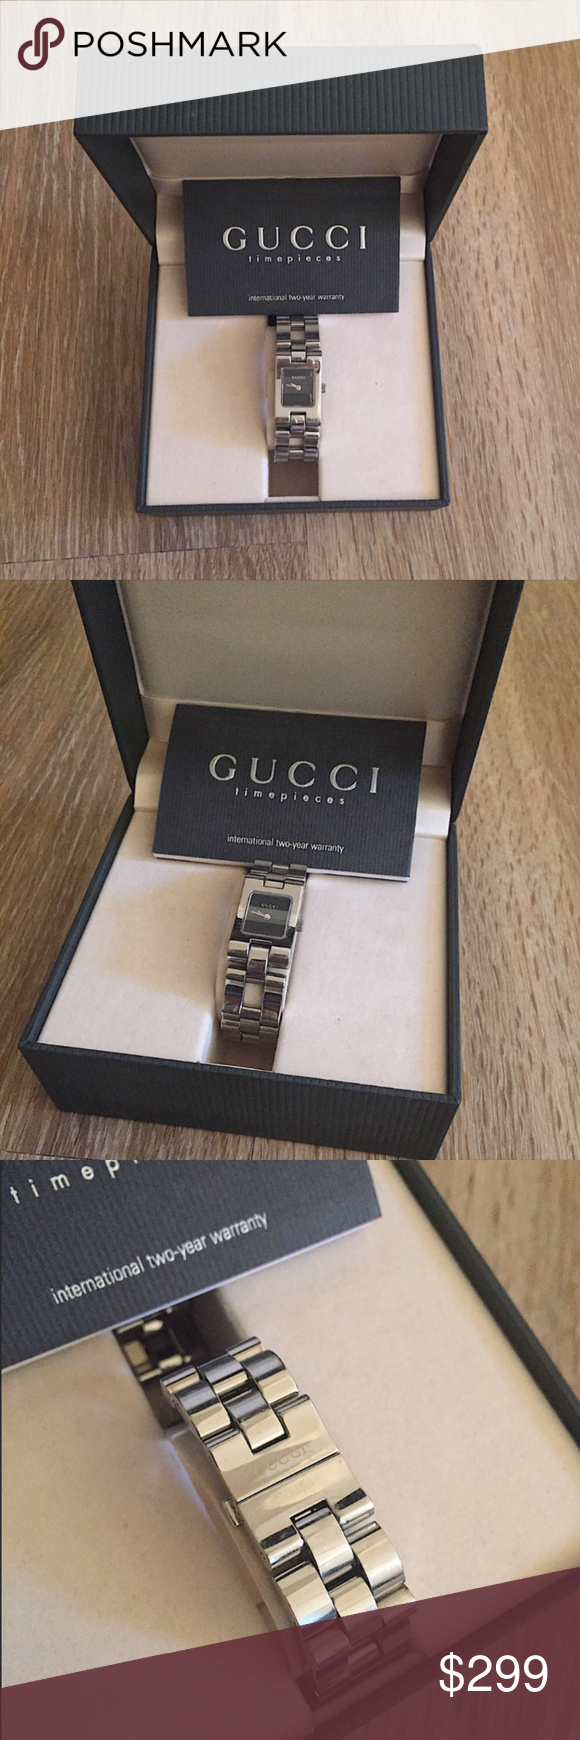 2616597a3e9 Gucci Women Silver watch Vintage style Authentic Gucci Original box are  included Fast shipping Gucci Accessories Watches